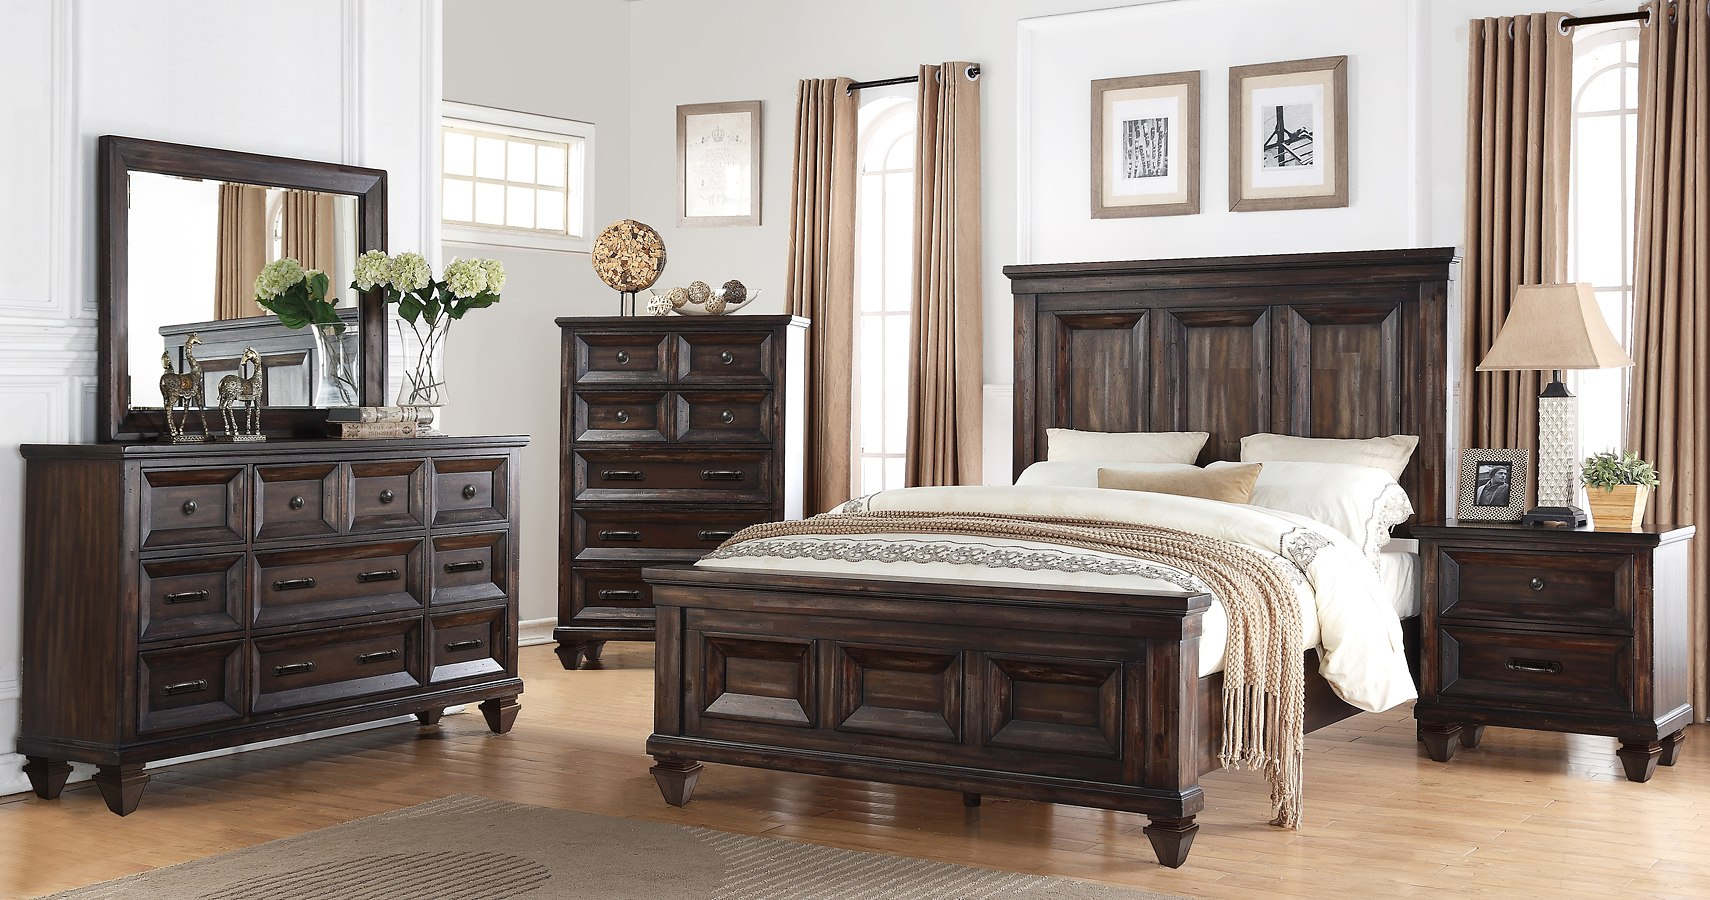 Factory Sofas Sevilla Sevilla Panel Bedroom Set New Classic Furniture